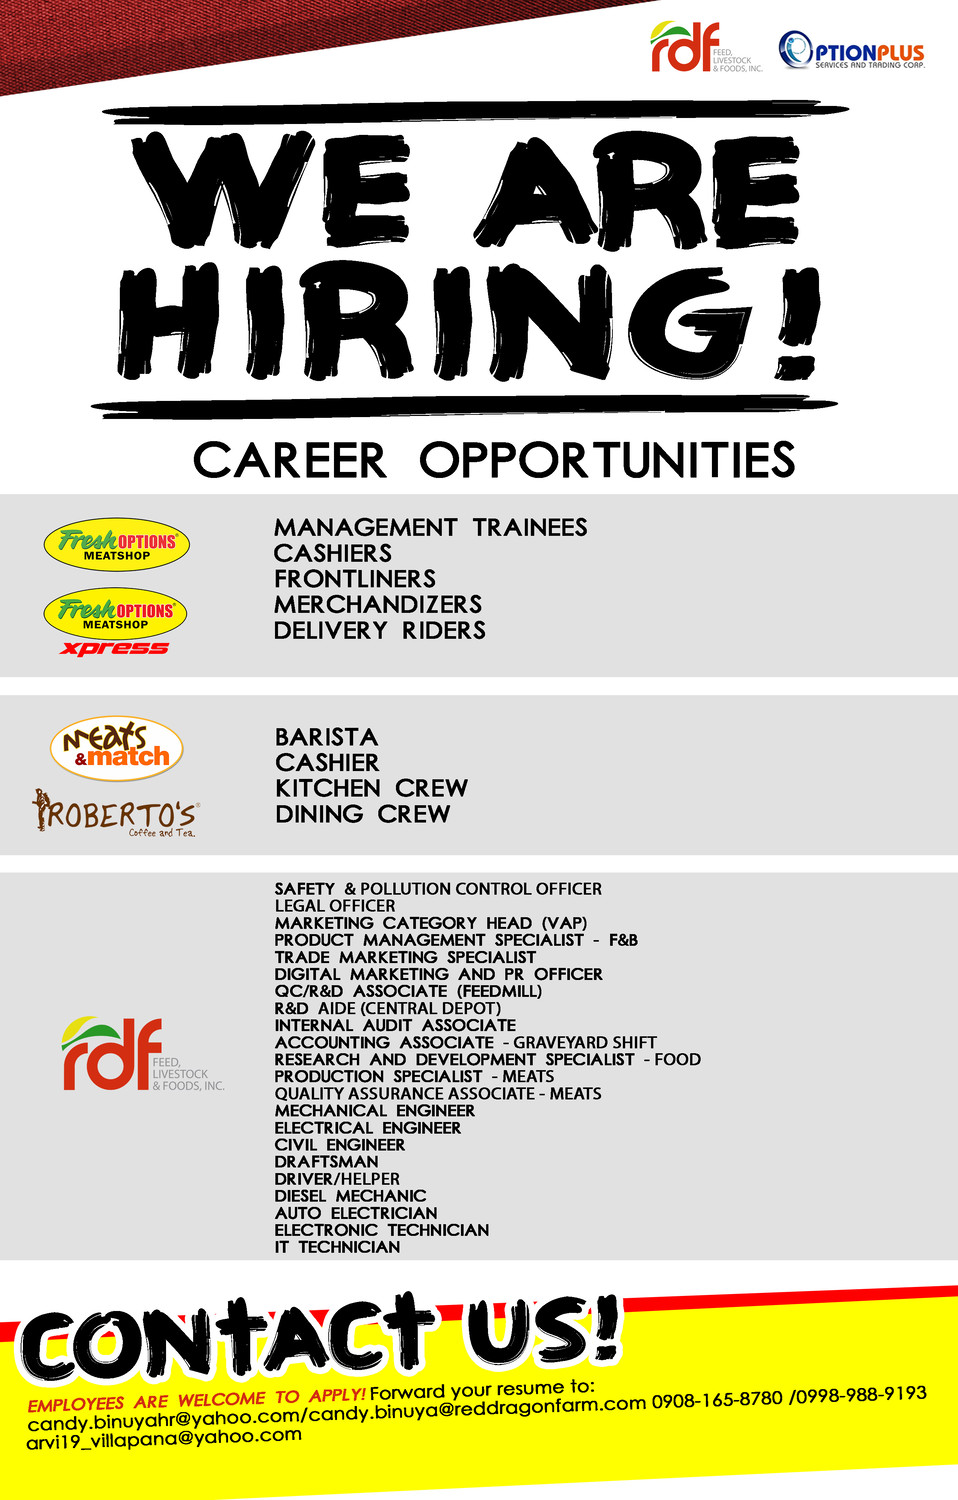 Please feel free to send your resume | Arvi Clandestine Villapana ...